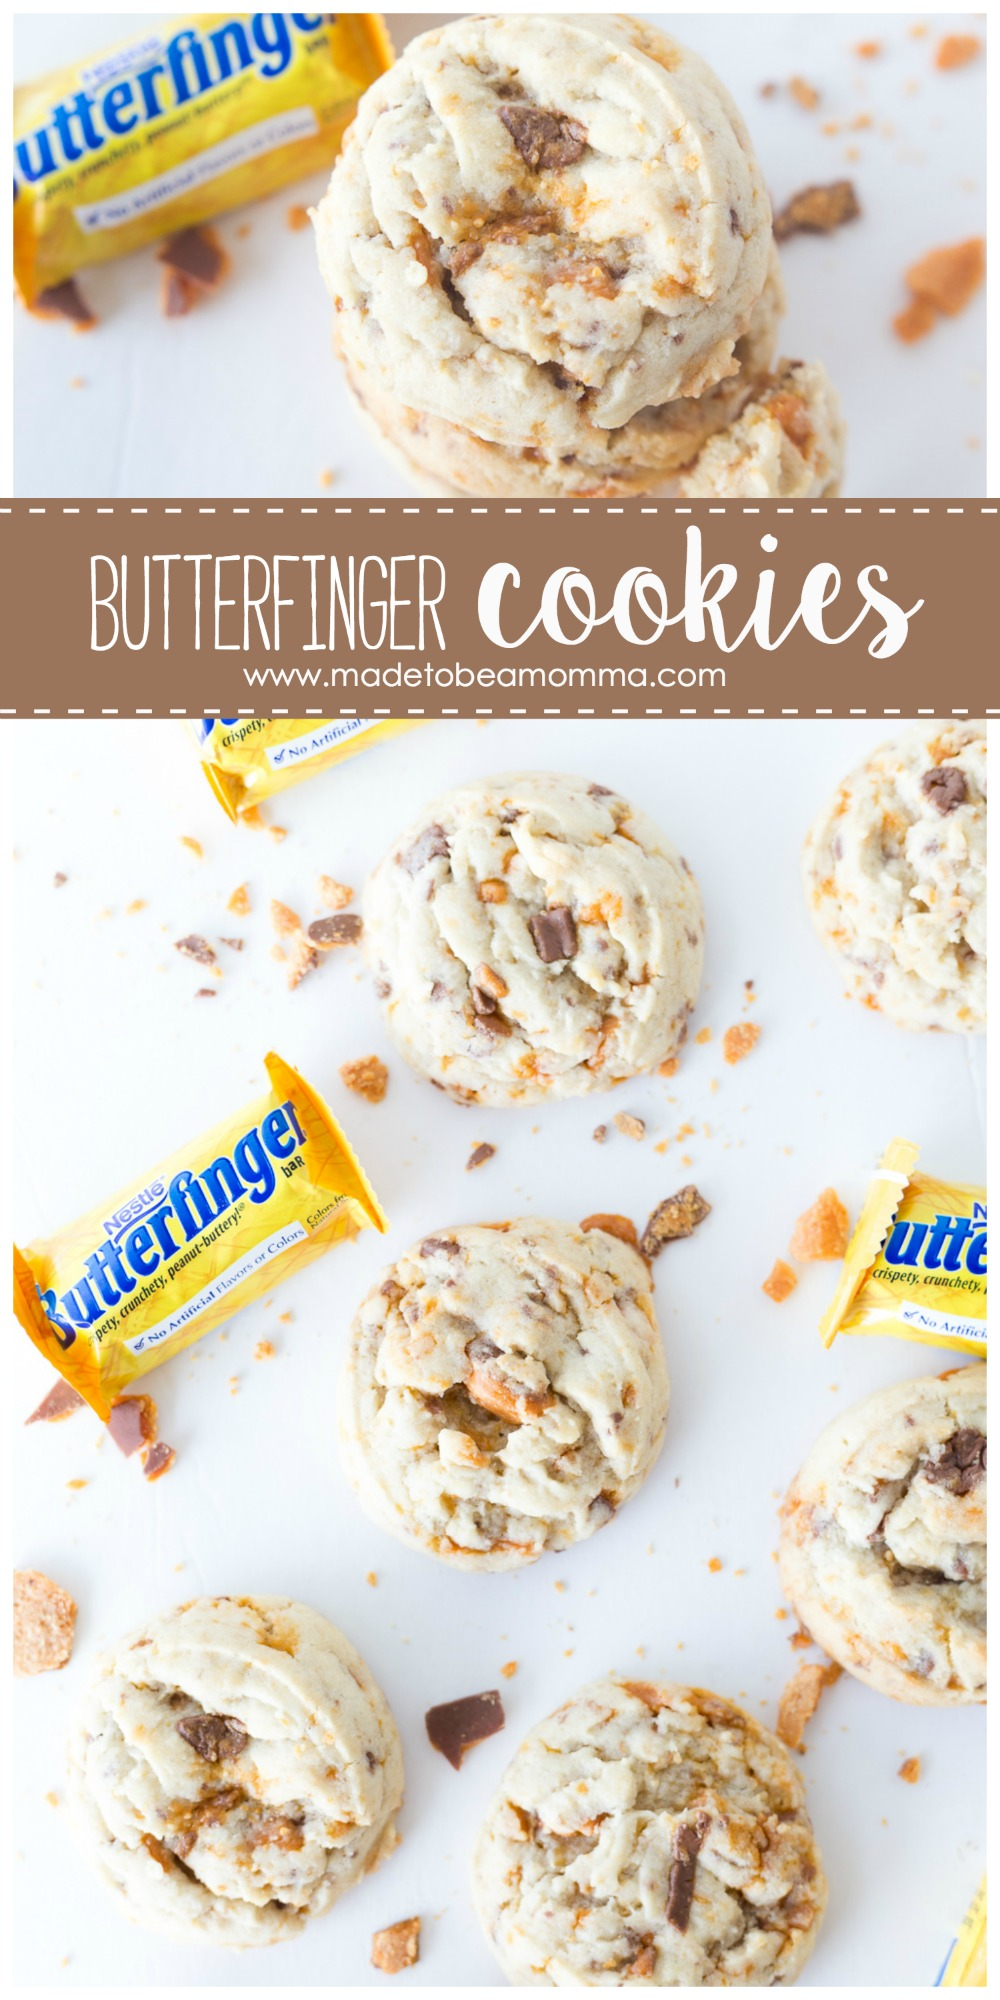 These Butterfinger cookies are soft, flavorful and delicious! They have a sweet taste and are filled with crunchy candy pieces! They are perfect for a Boo Basket. www.madetobeamomma.com